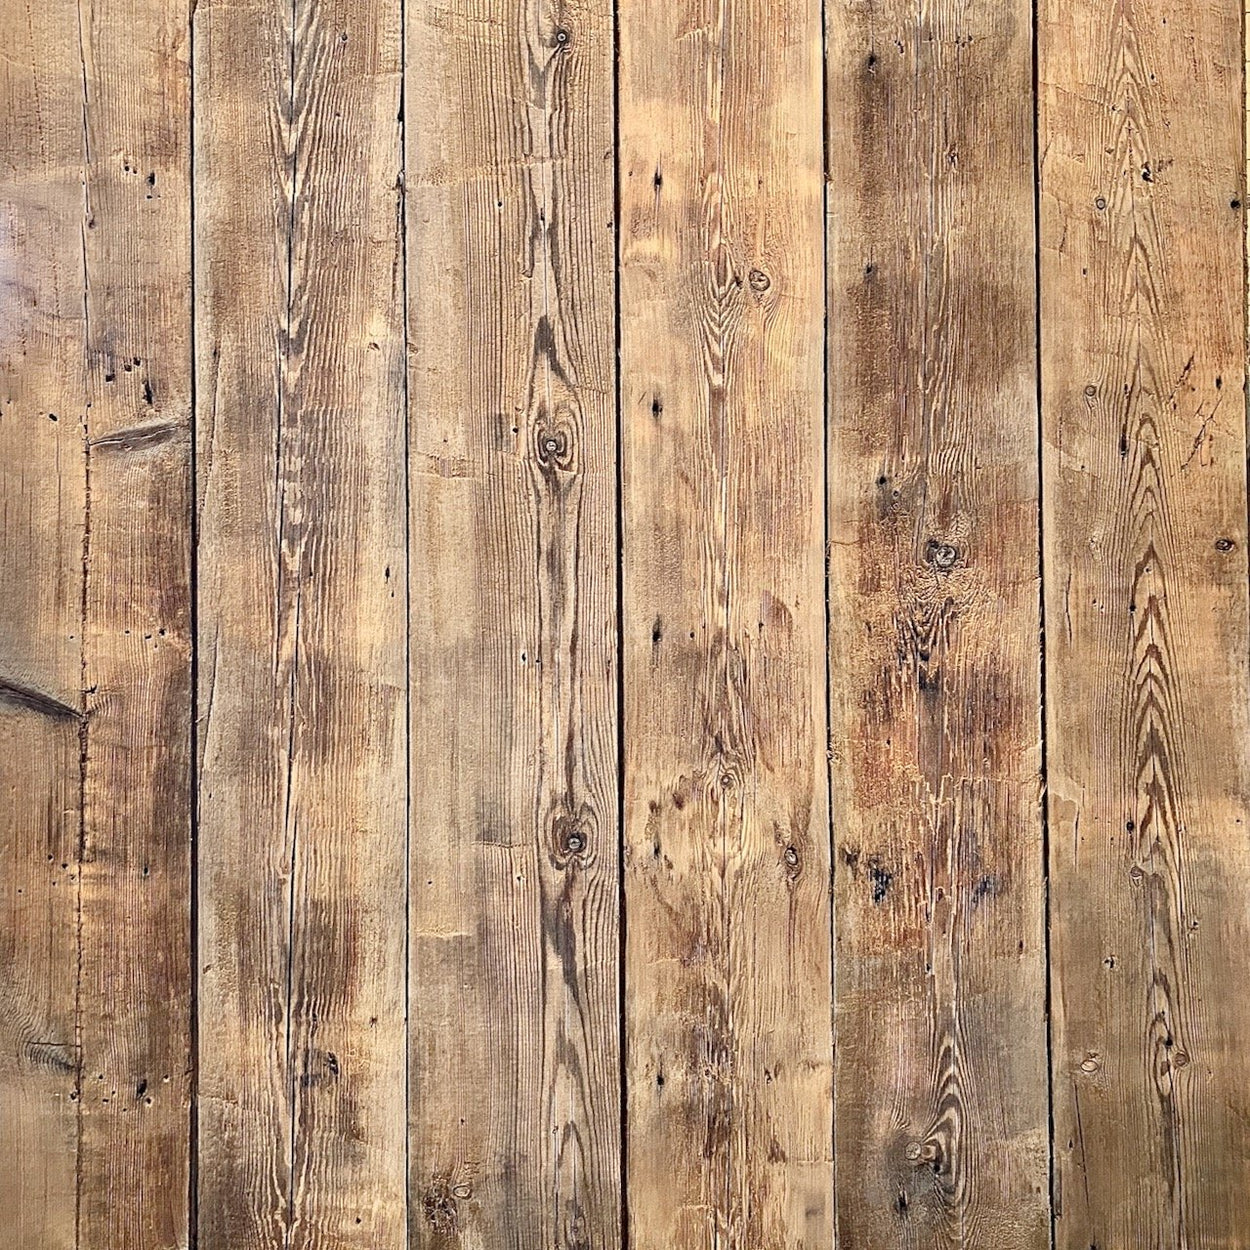 Sample of Reclaimed Engine Shed Cladding Boards